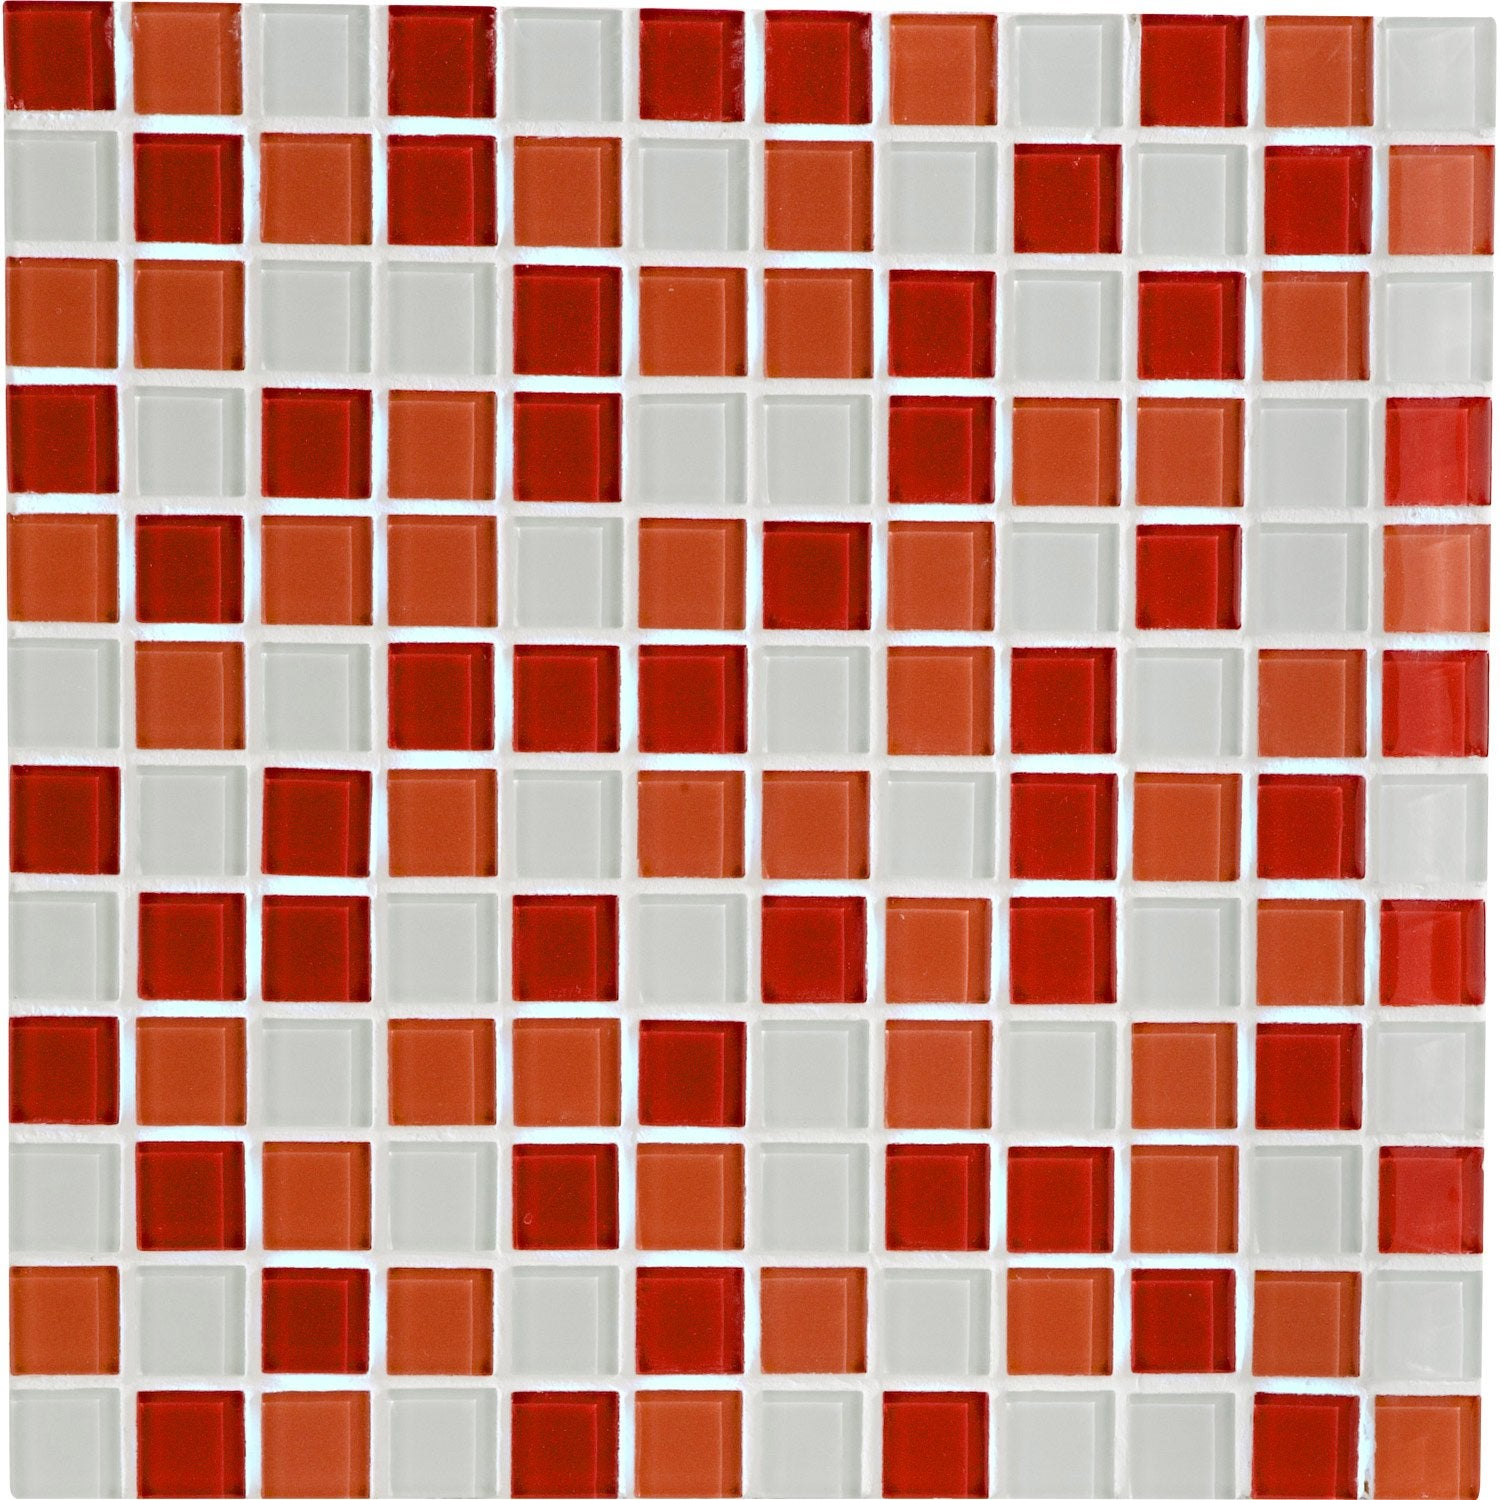 Mosa que mur shaker mix rouge leroy merlin for Mosaique rouge salle de bain